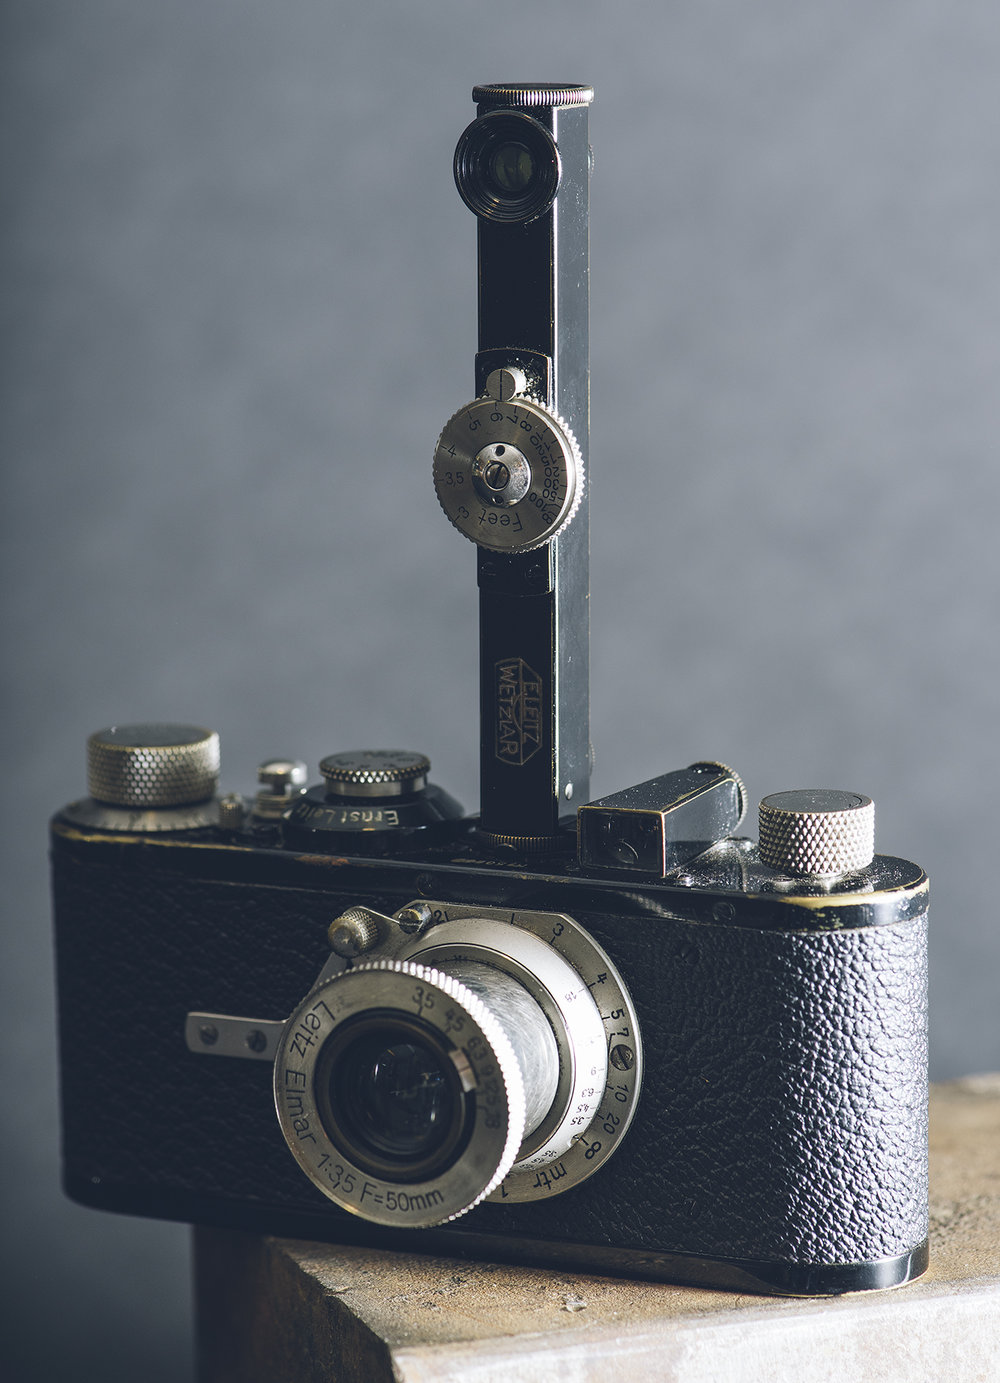 Leica collecting is all about the accessories. All Leica accessories have a code name. This is a 1930's FODUA  vertical rangefinder for the very rare model 1A.